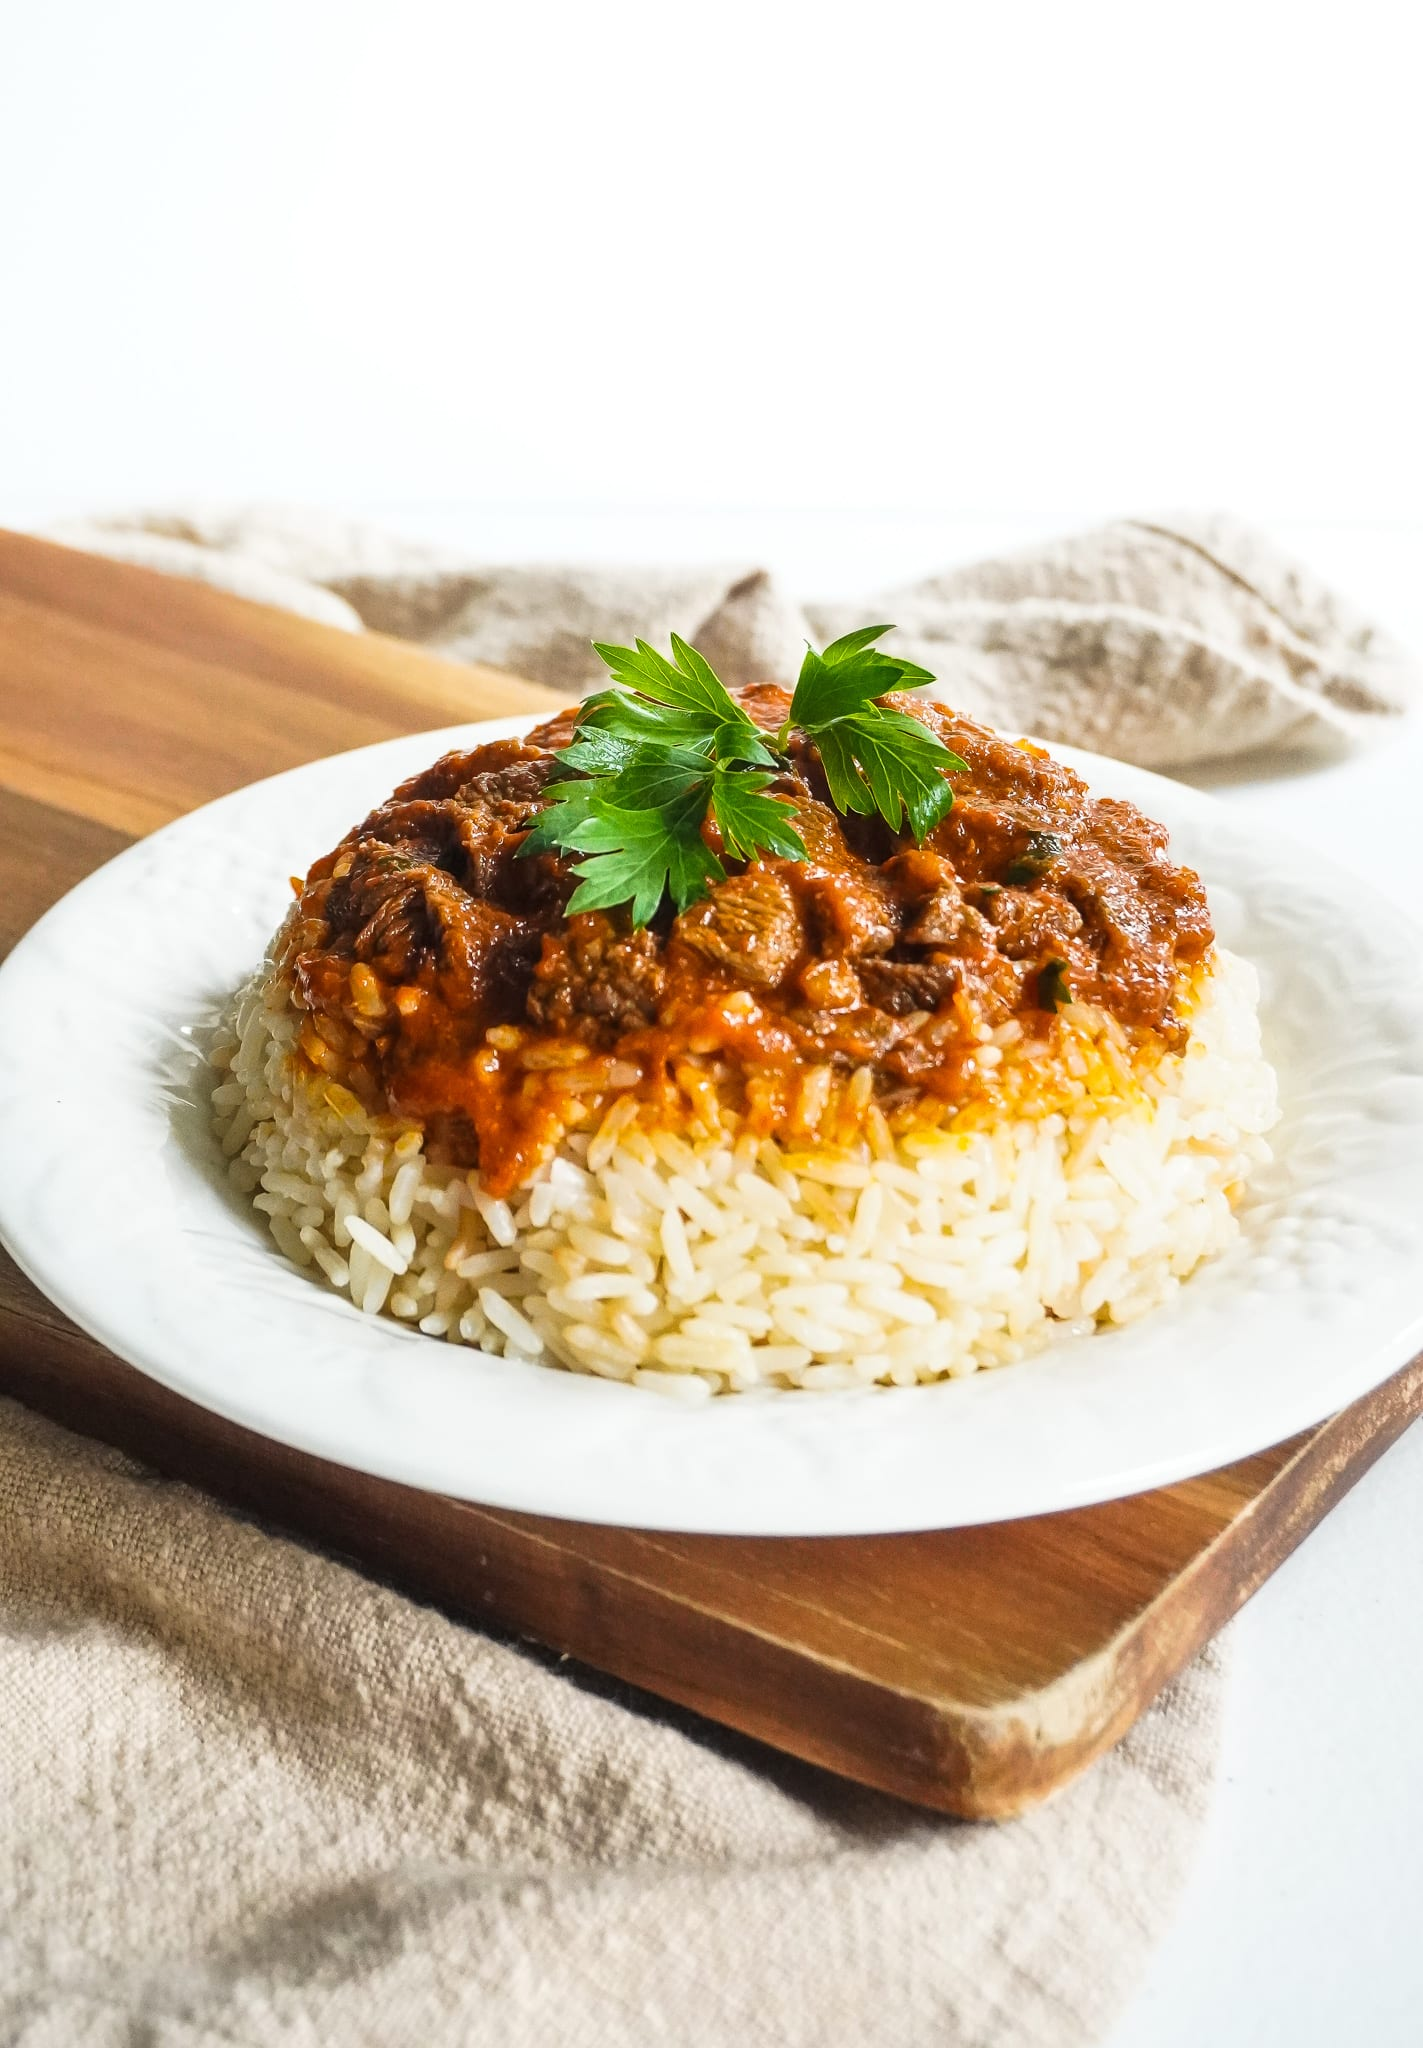 Turkish meat with rice etli pilav